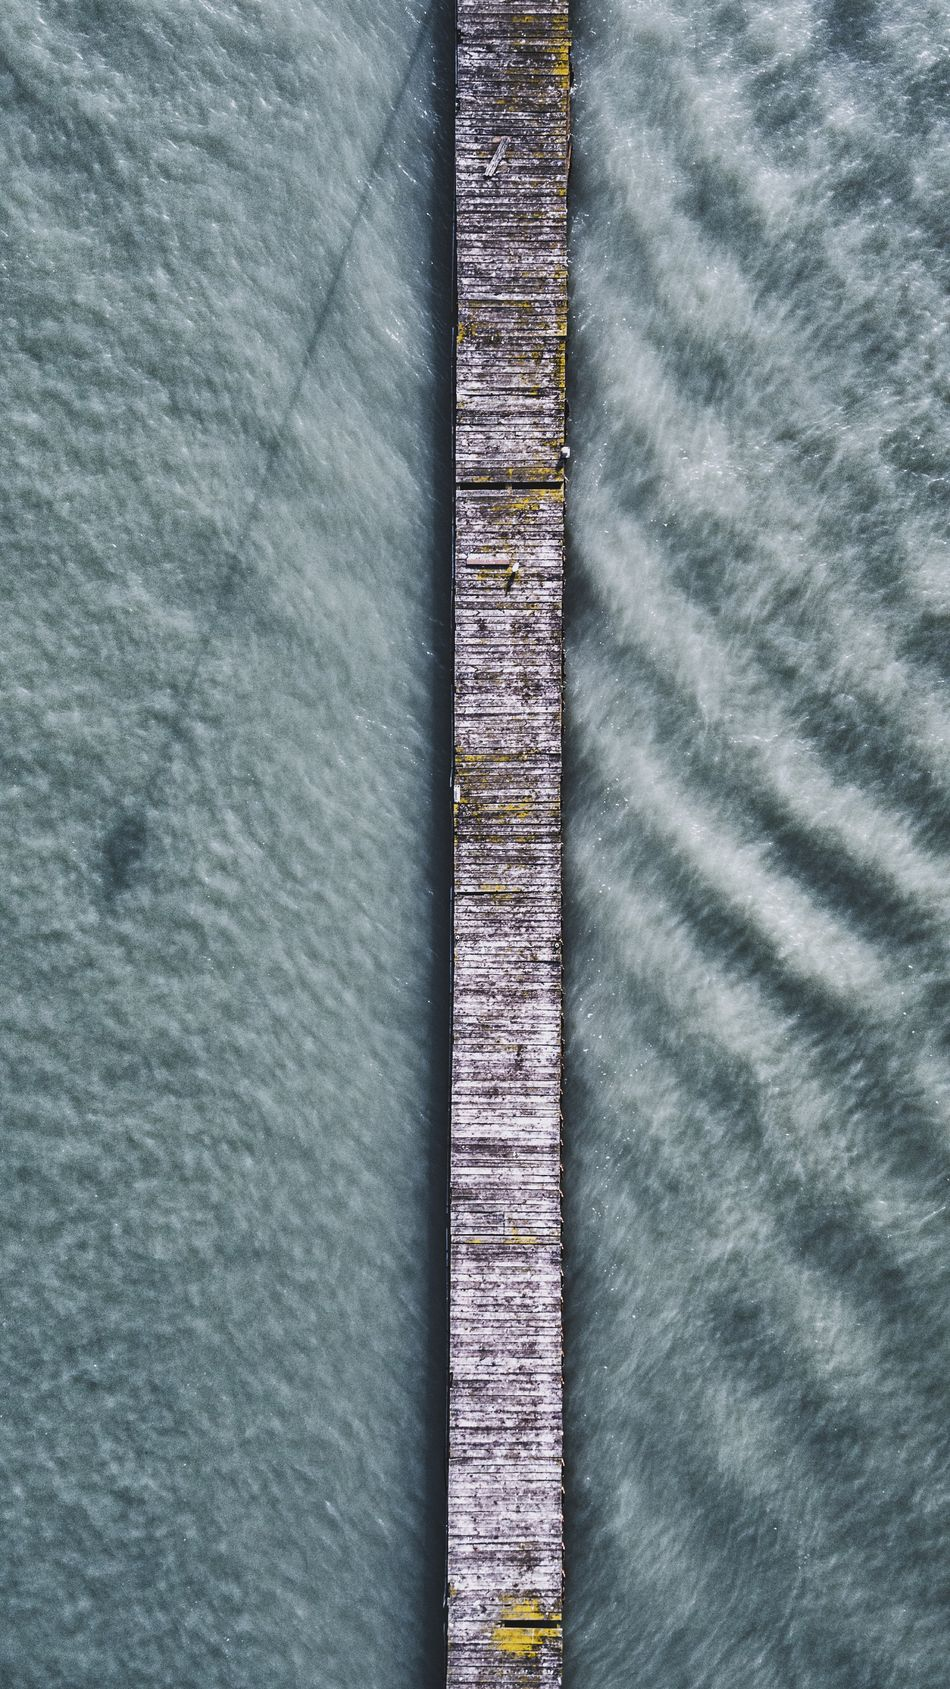 Backgrounds Full Frame Textured  Architecture Water Tones Nature Aerial View Rippled Aerial Michigan Detroit Built Structure Sea Motion Old Vintage Dock Bridge Wooden Decay Spooky Creepy Path Road